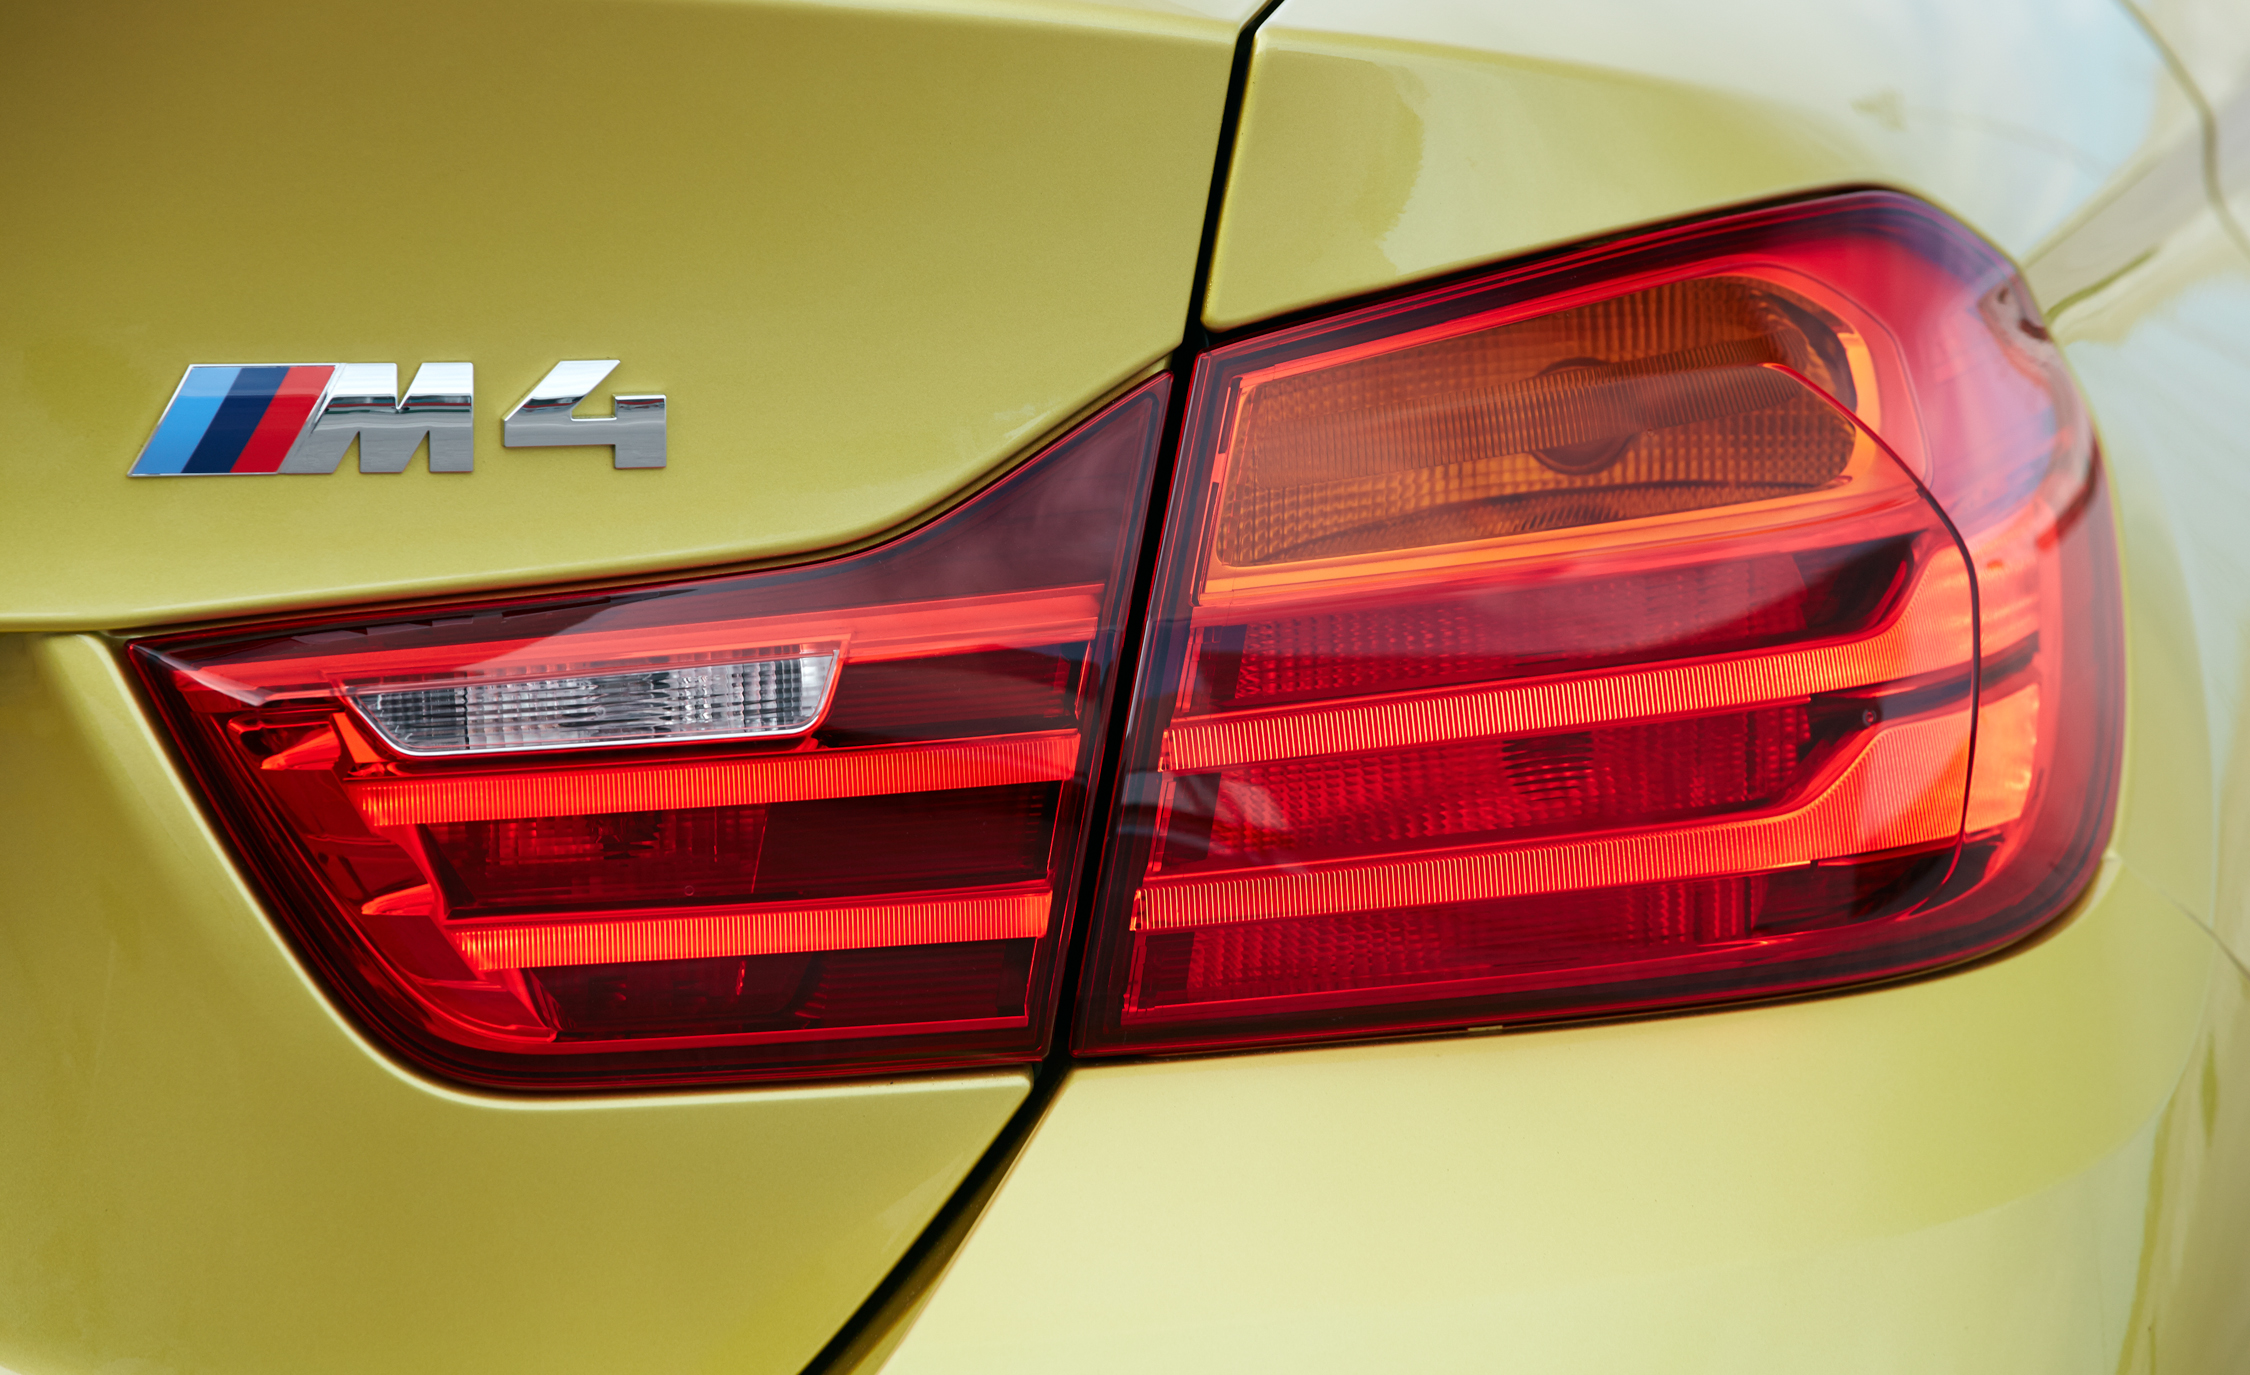 2015 BMW M4 Coupe Badge And Taillight (Photo 34 of 41)